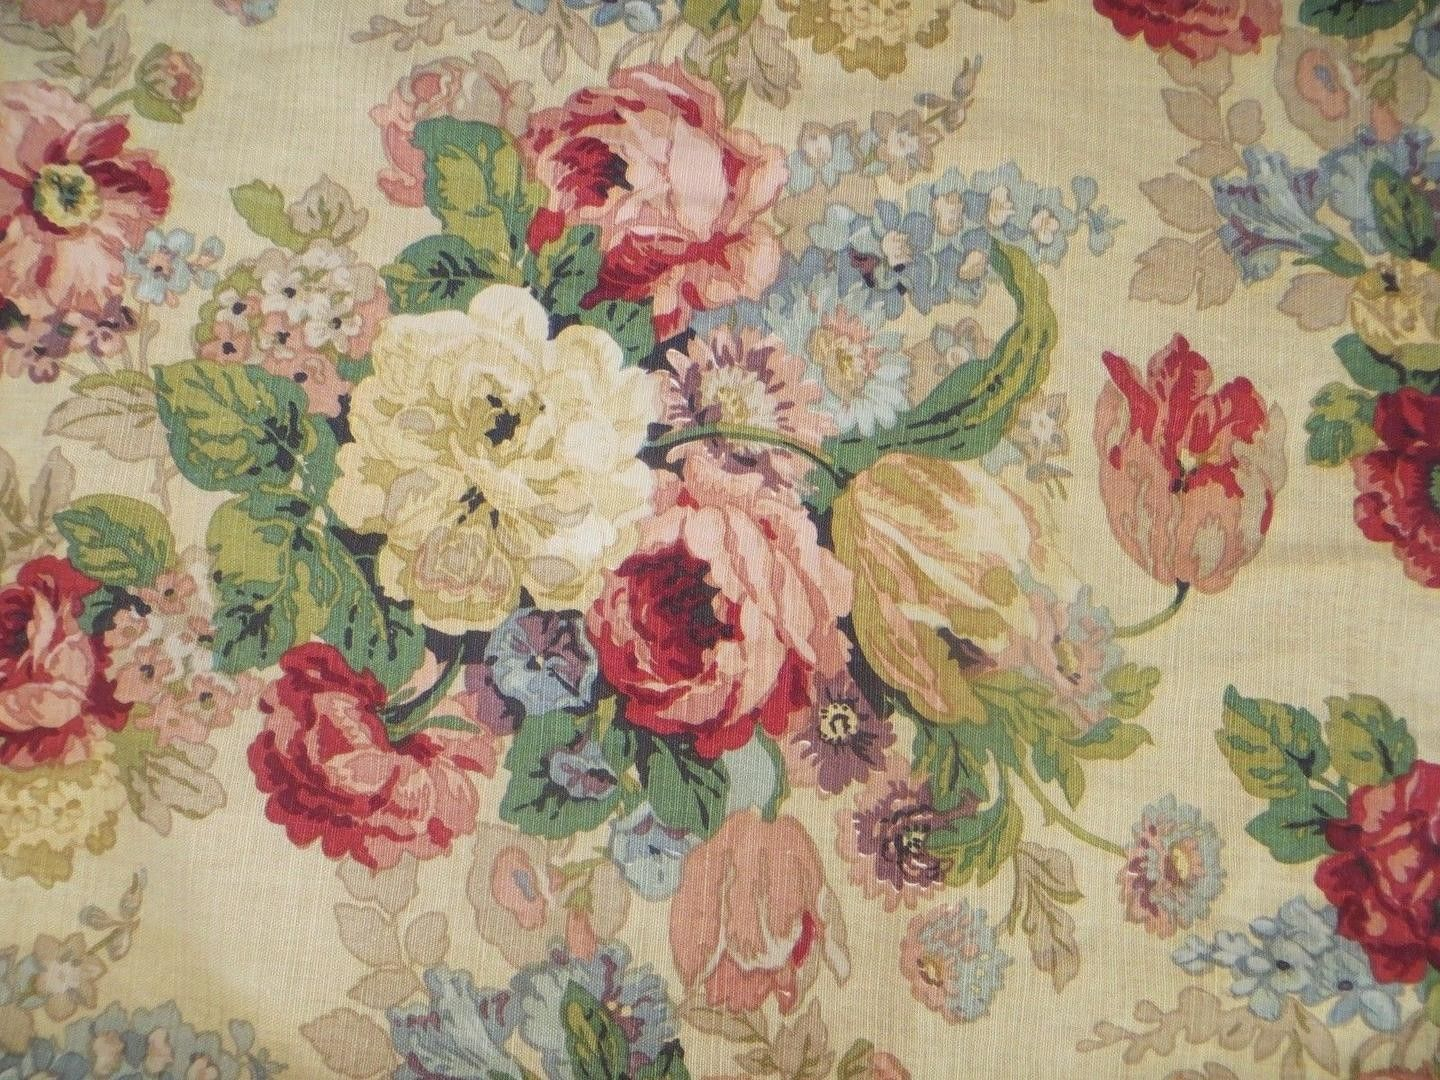 Vintage 1940 S Floral Barkcloth Fabric Cabbage Rose 1885674187 Floral Upholstery Fabric Vintage Floral Wallpapers Vintage Floral Fabric